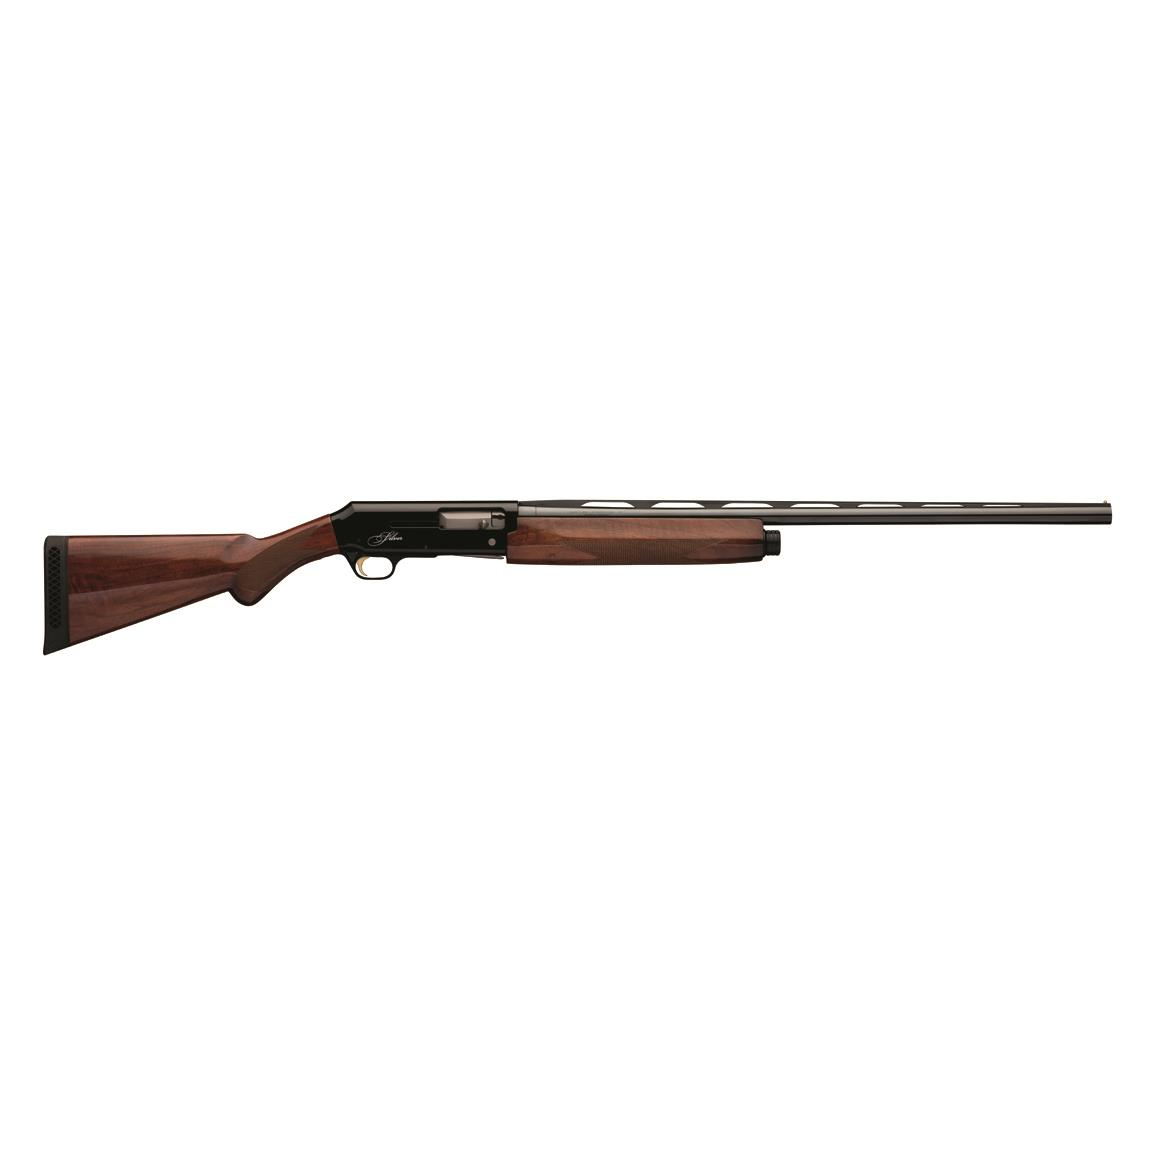 "Browning Silver Black Lightning, Semi-Automatic, 12 Gauge, 26"" Barrel, 4+1 Rounds"